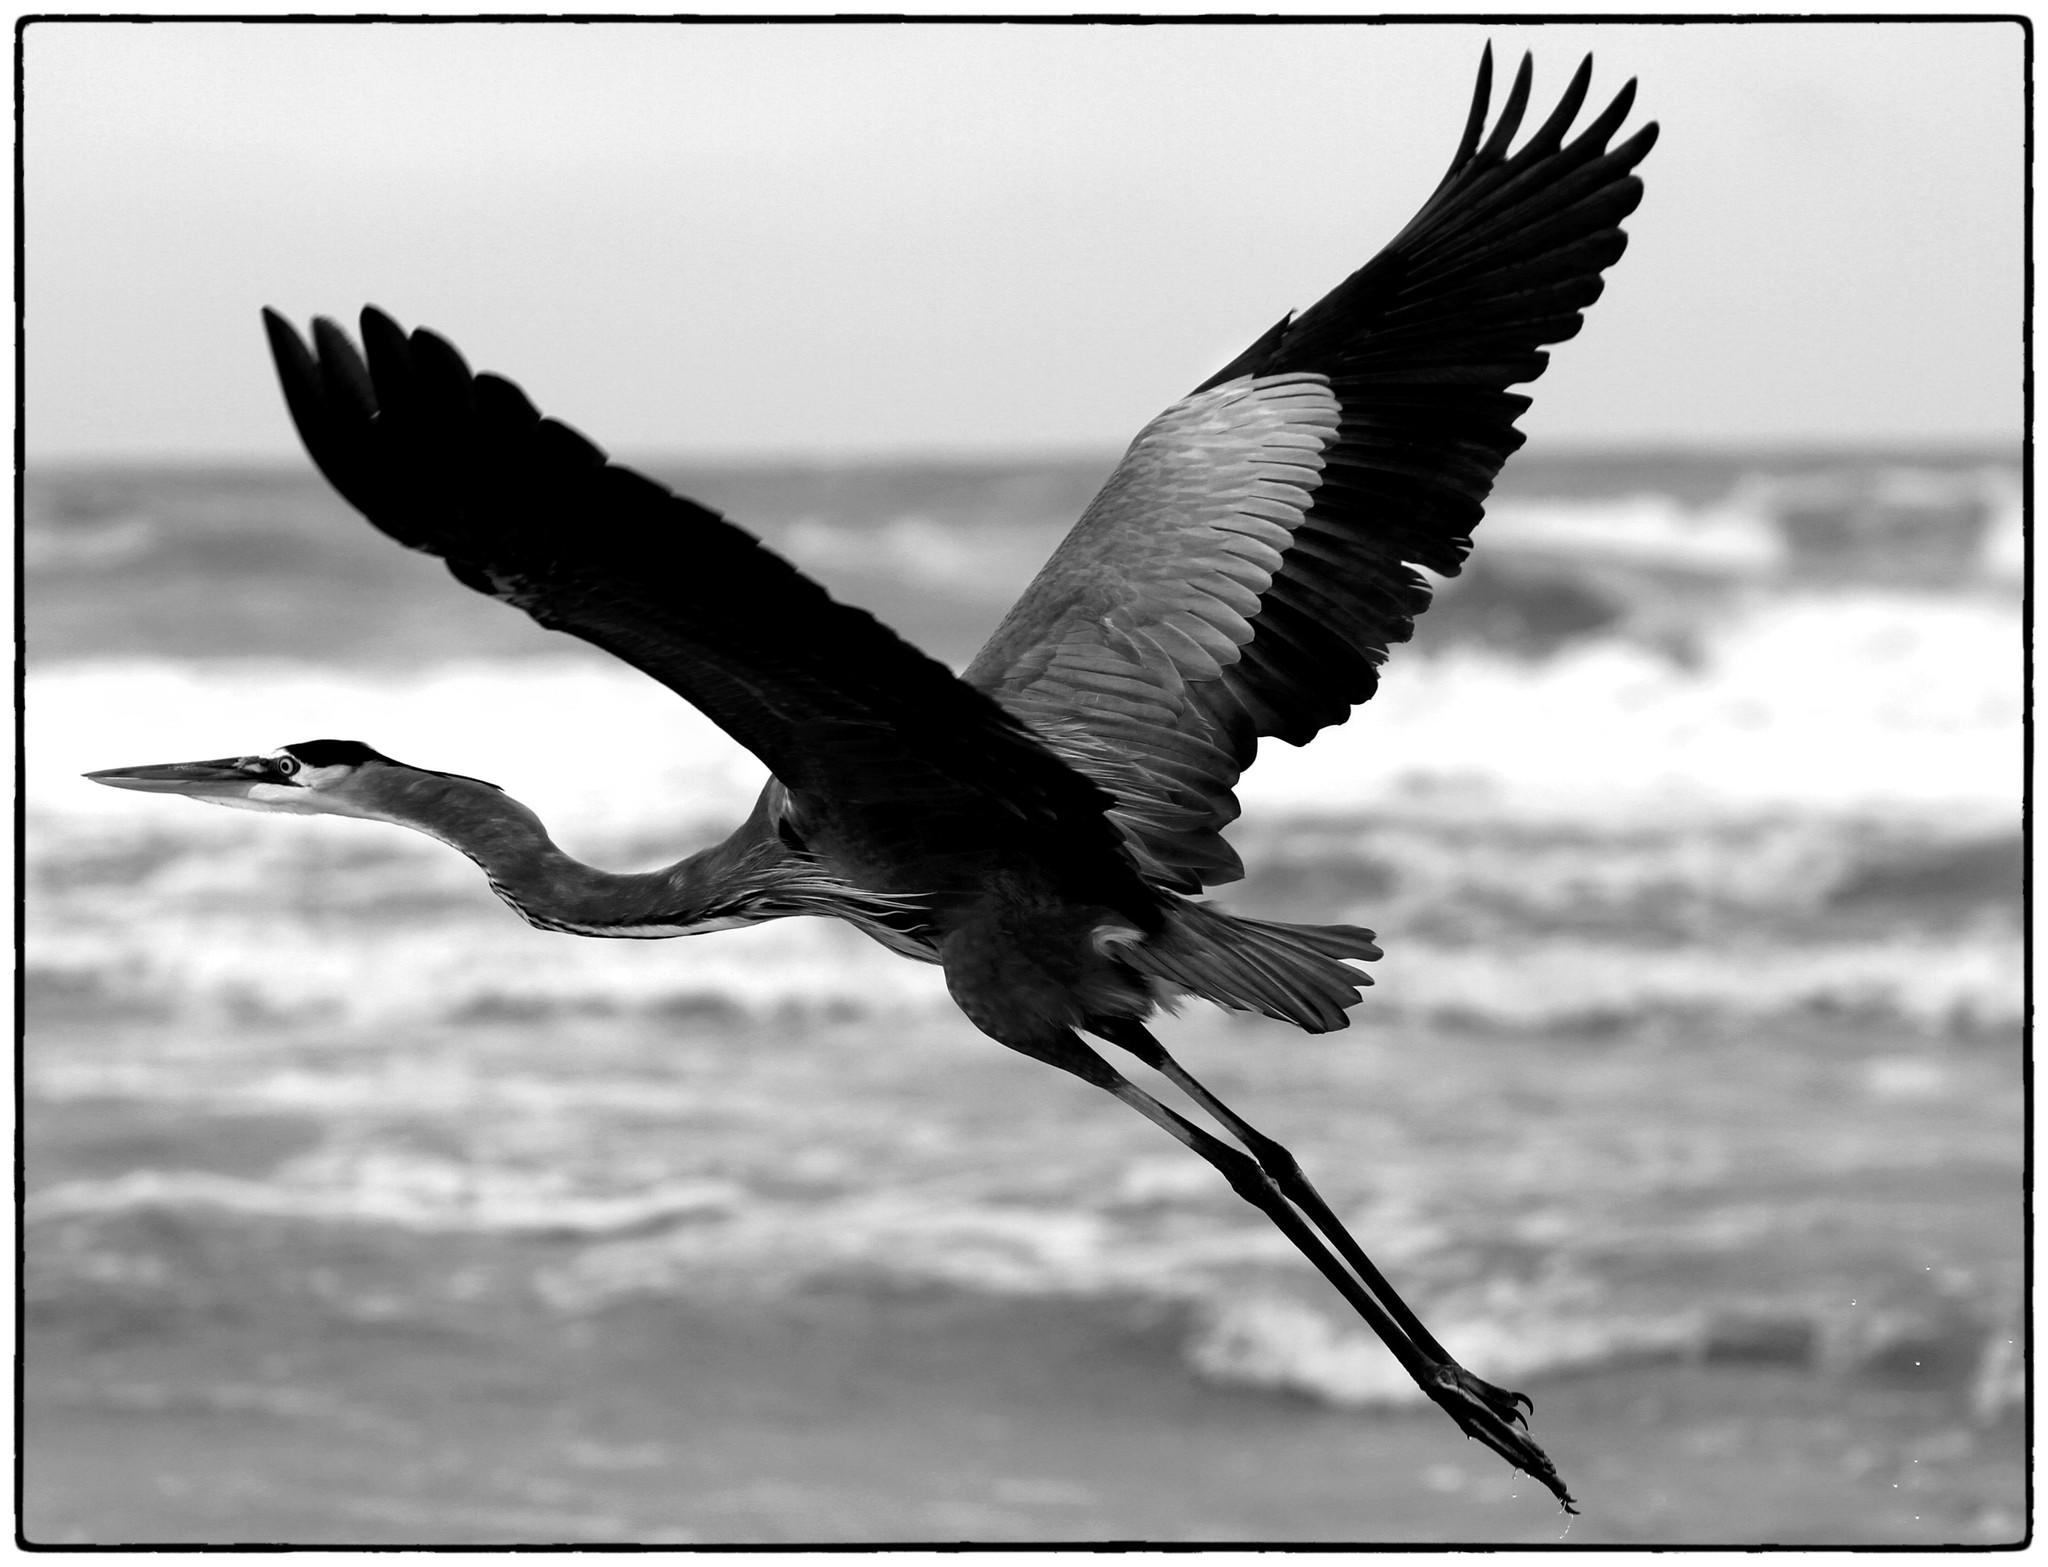 A Great Blue Heron takes flight on a drizzly gray day at the beach in northern Volusia, Wednesday, November 14, 2012. (Joe Burbank/Orlando Sentinel)